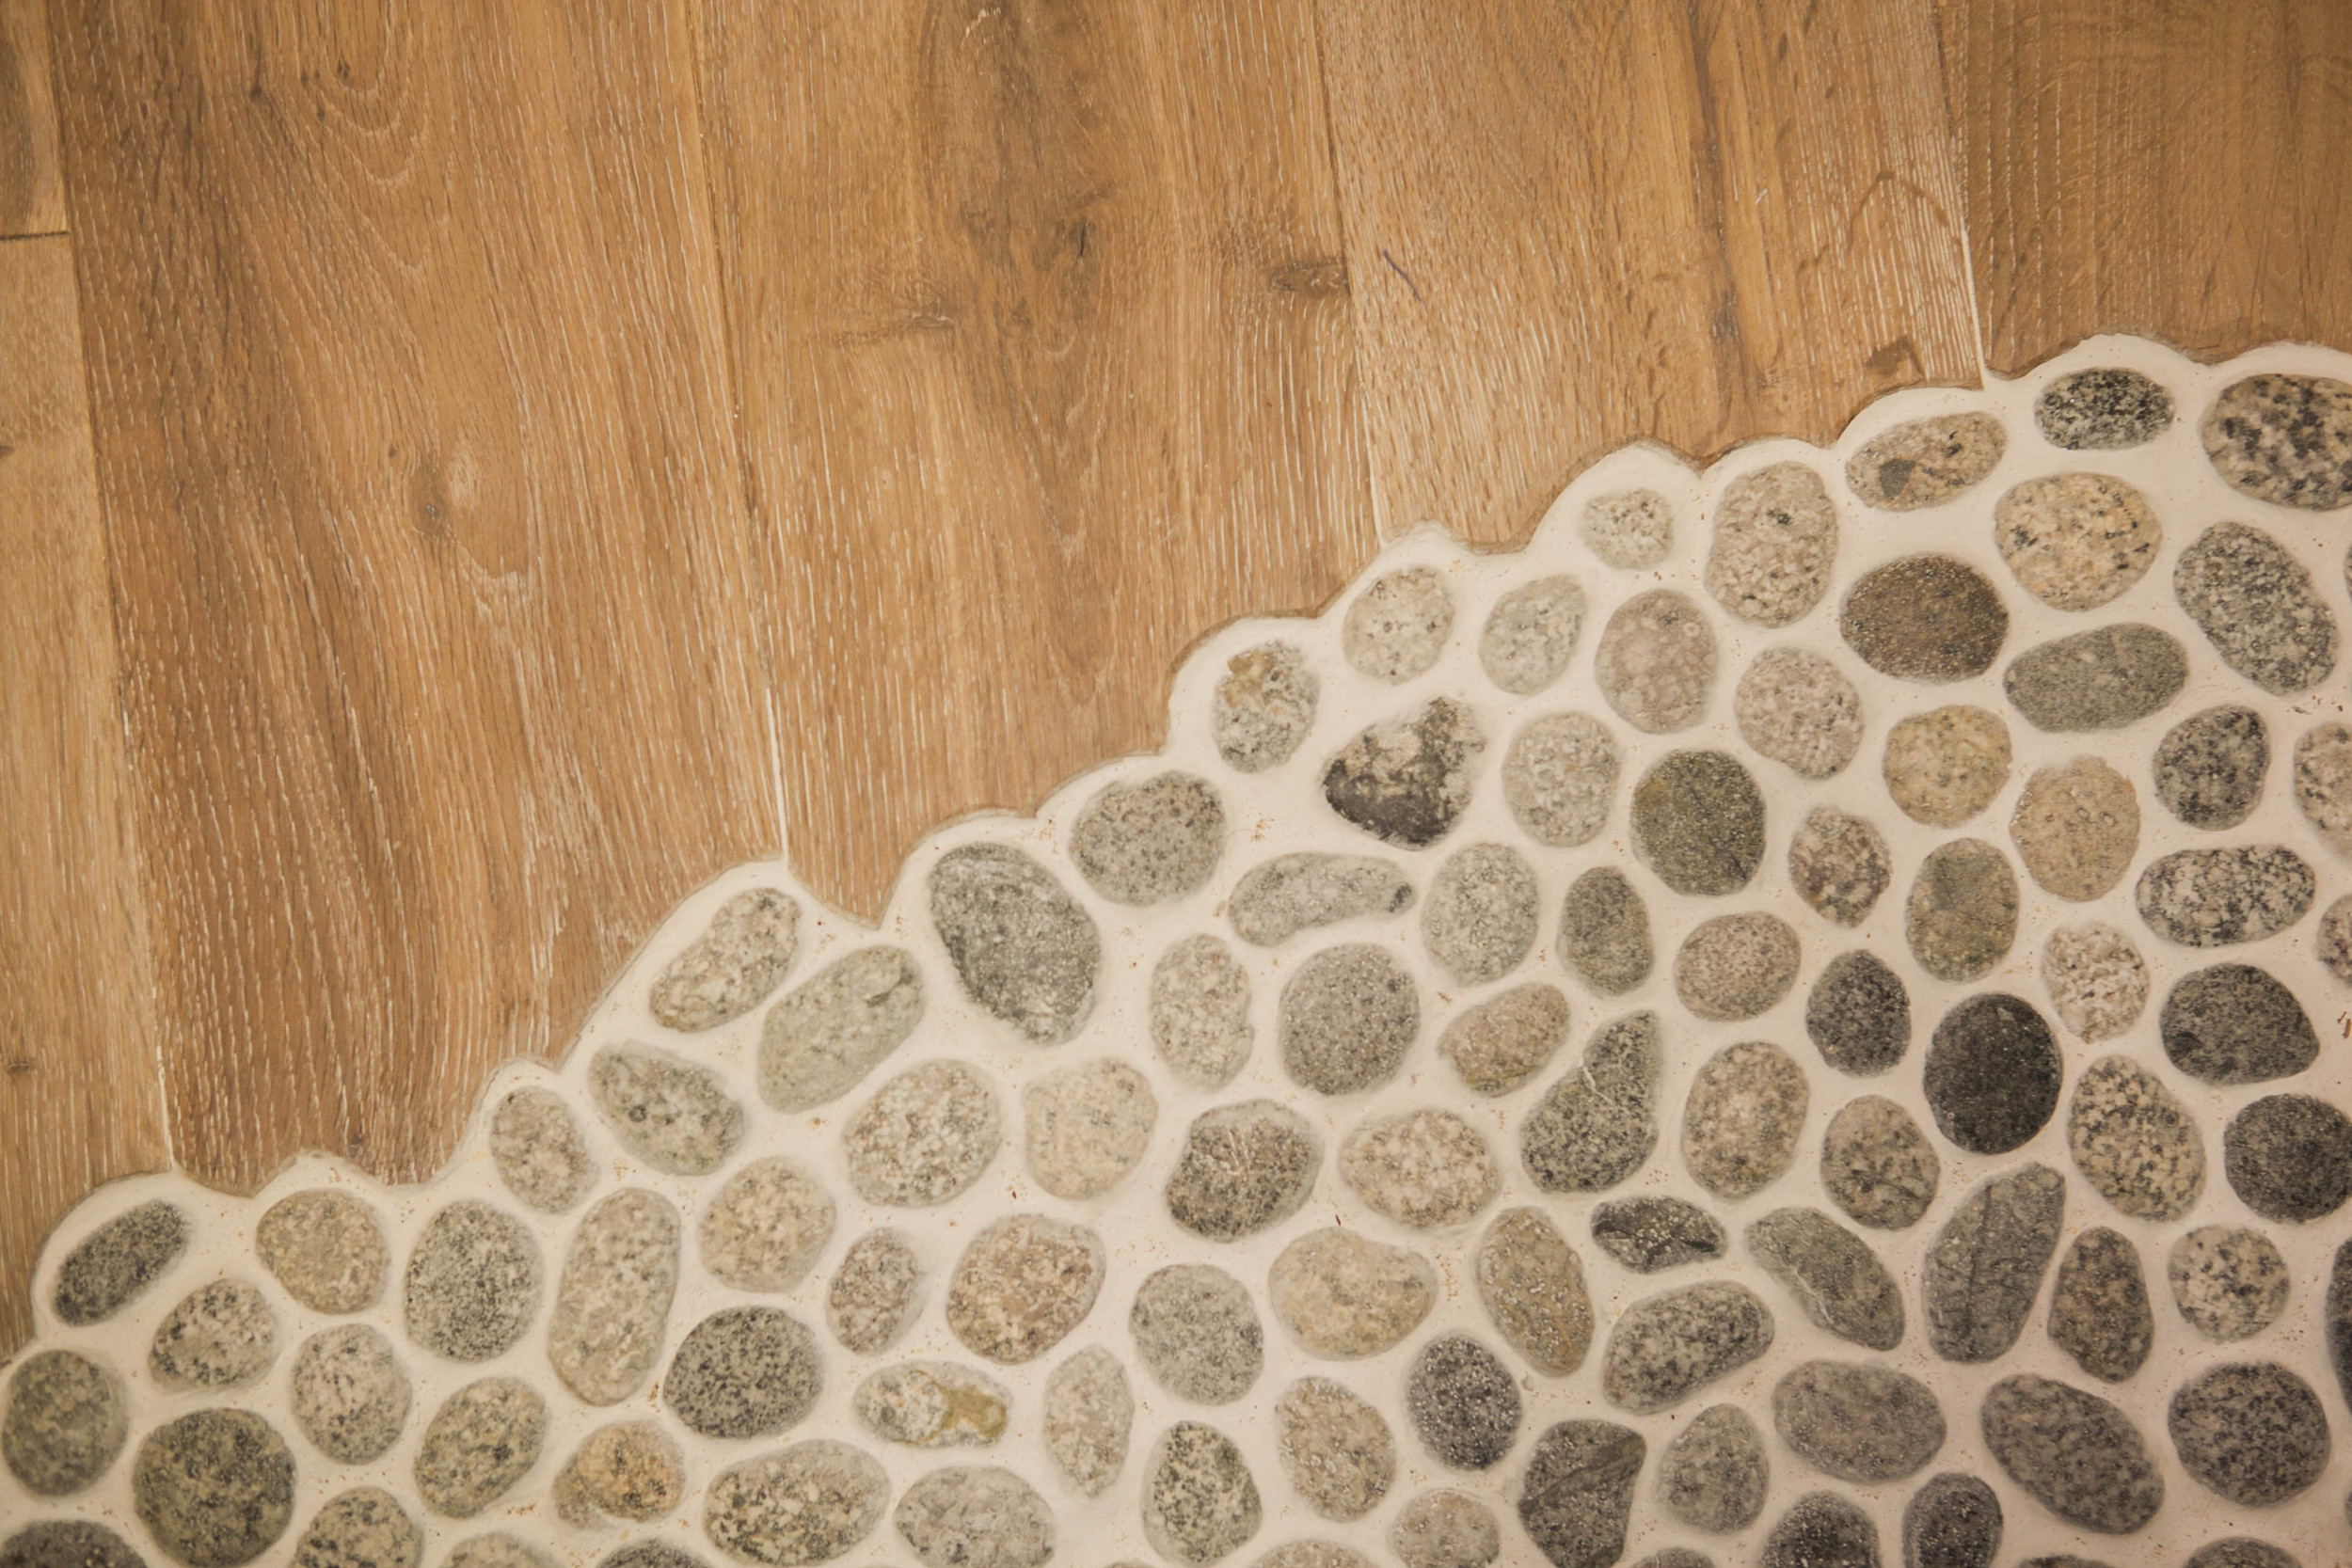 """The pebbles are heated and """"flow"""" under the door to meet the flooring outside the room"""